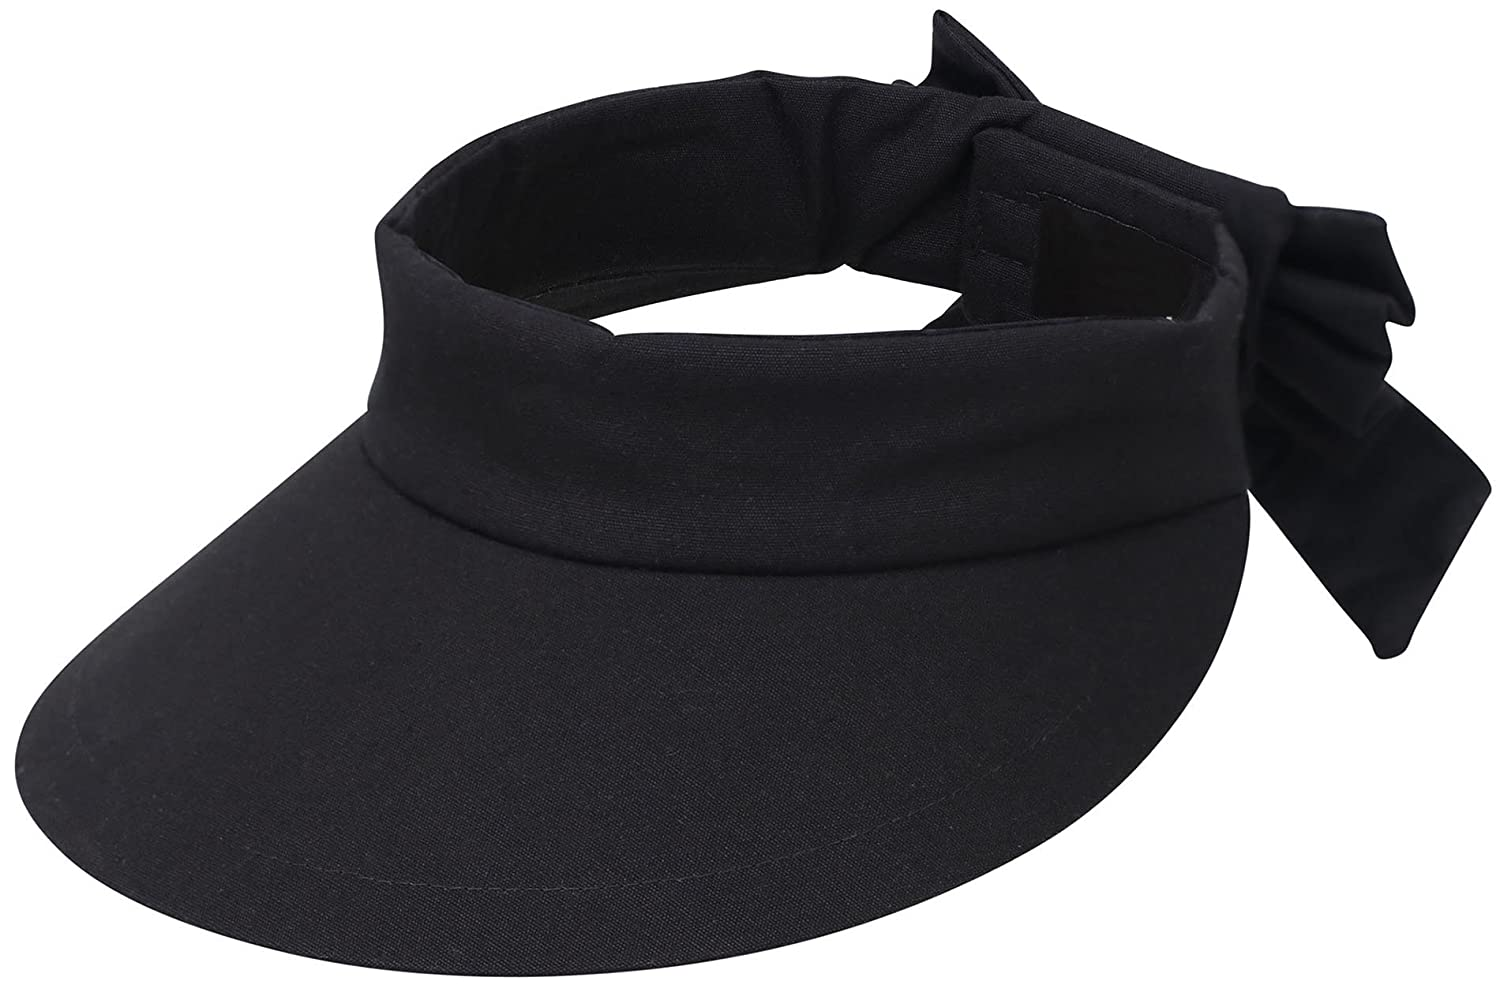 85792a31 This visor protects the face as well as a regular sunhat, yet allows you  the freedom to wear your hair up or down as desired, thanks to its open top.